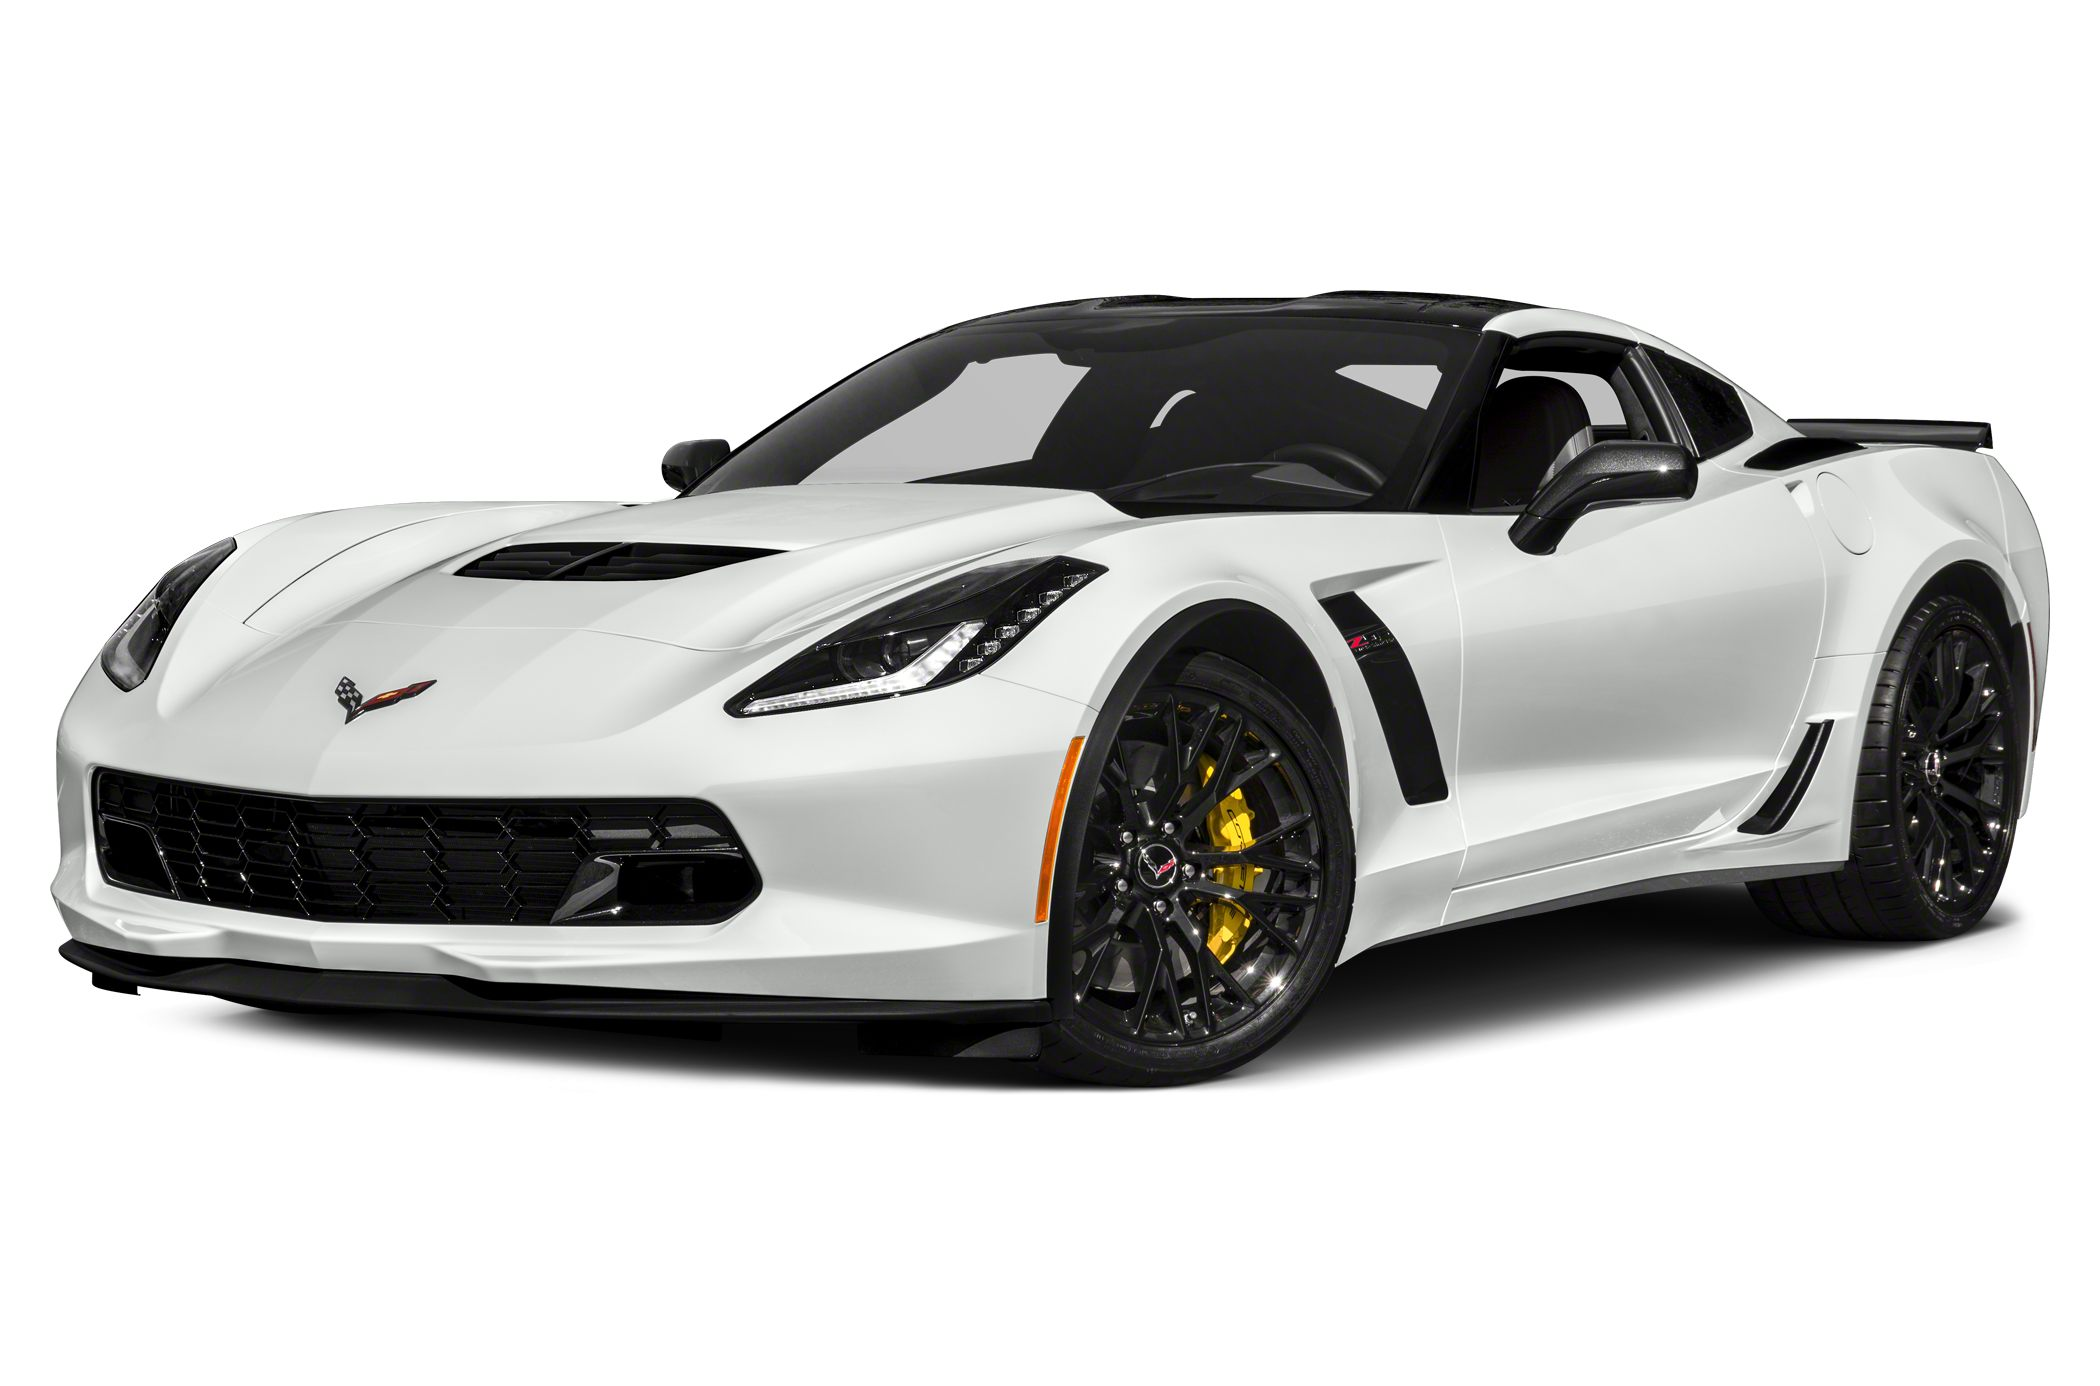 2015 Chevrolet Corvette Z06 Hardtop Coupe for sale in Cathedral City for $112,565 with 0 miles